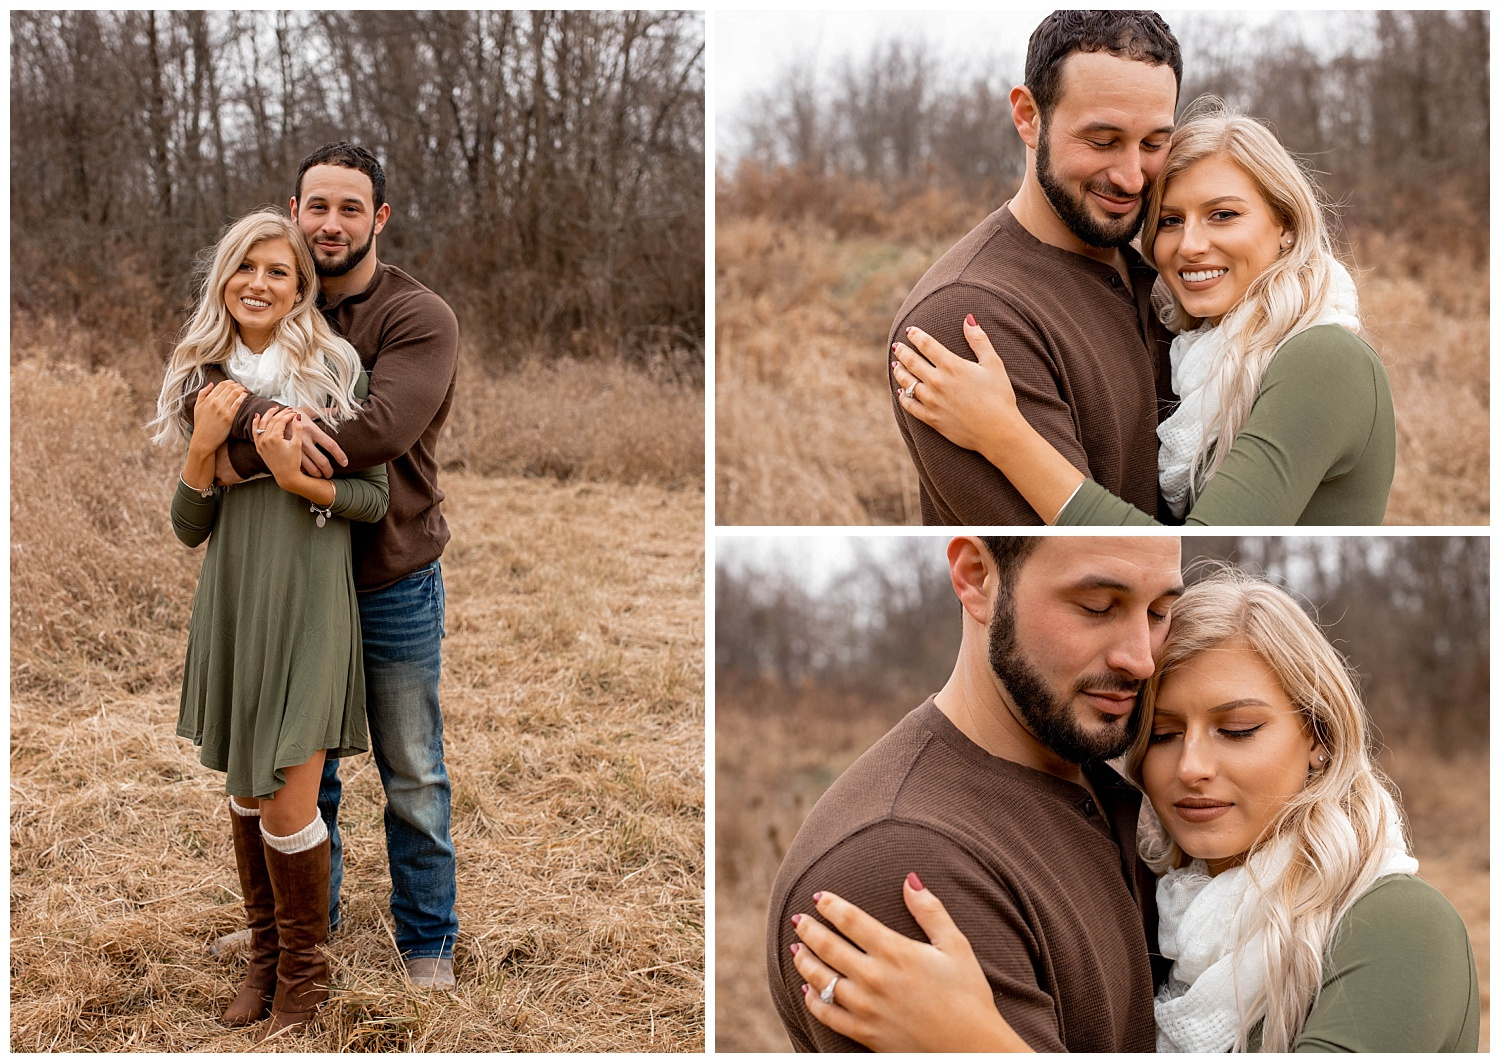 Christmas Tree Farms-Amanda & Jake Engagement_0193.jpg